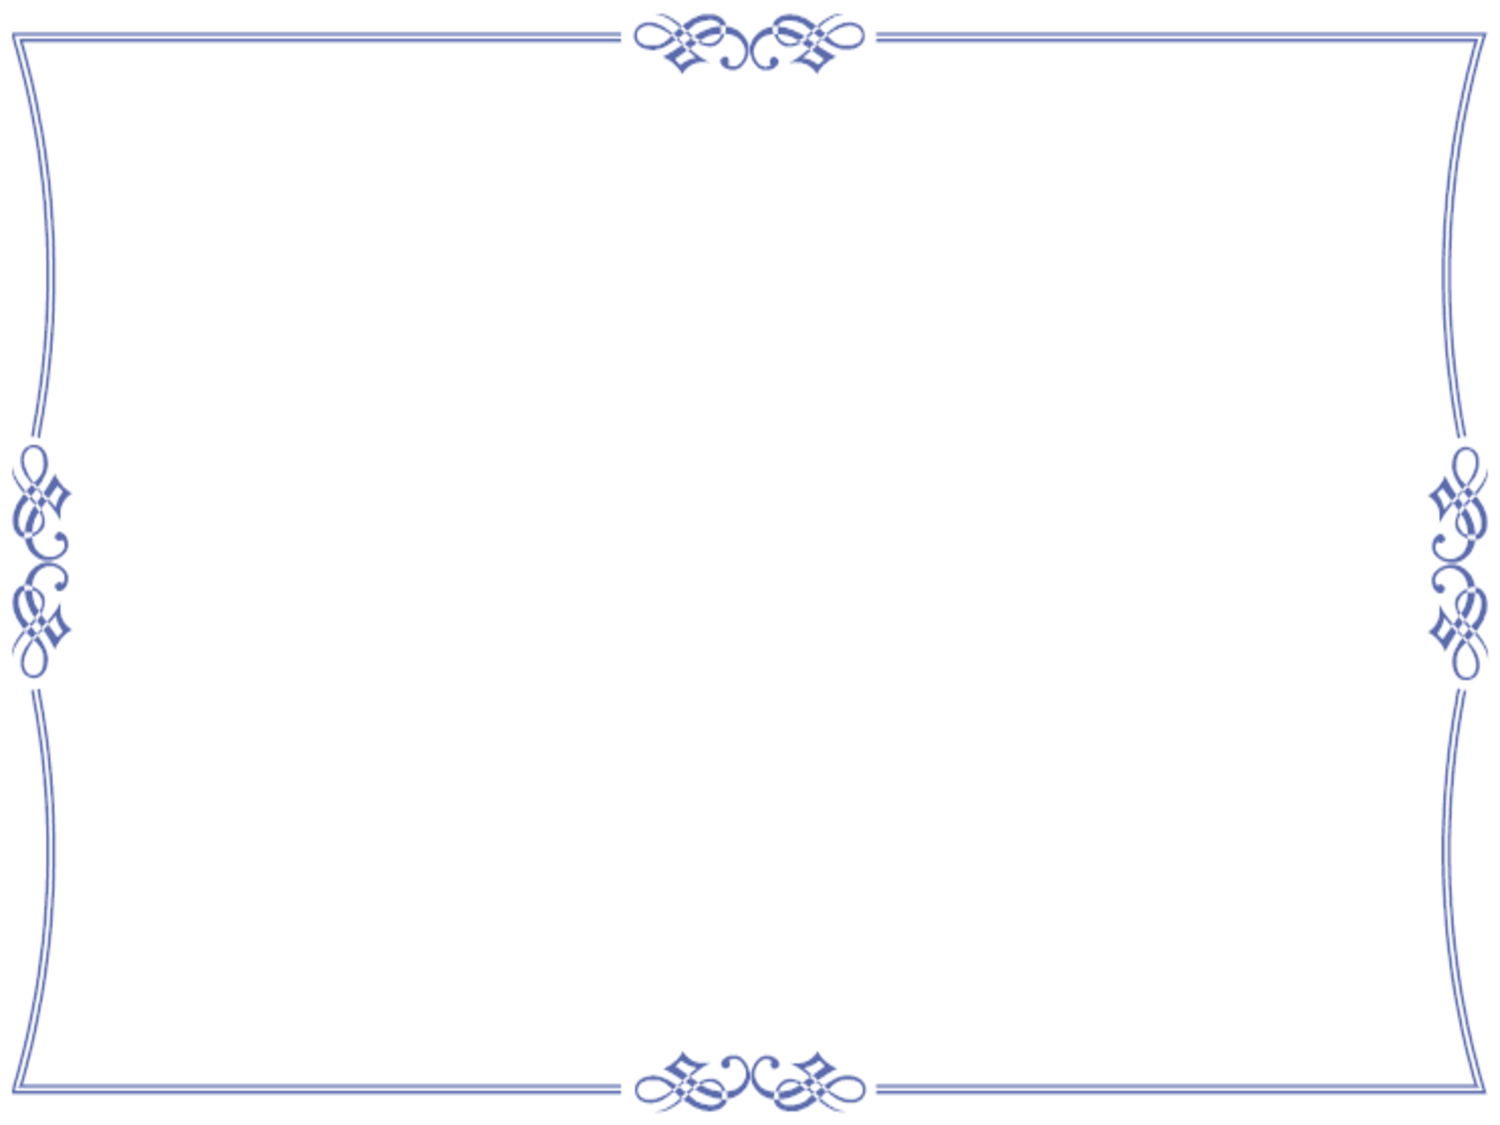 Certificate Borders Clipart - Clipart Kid